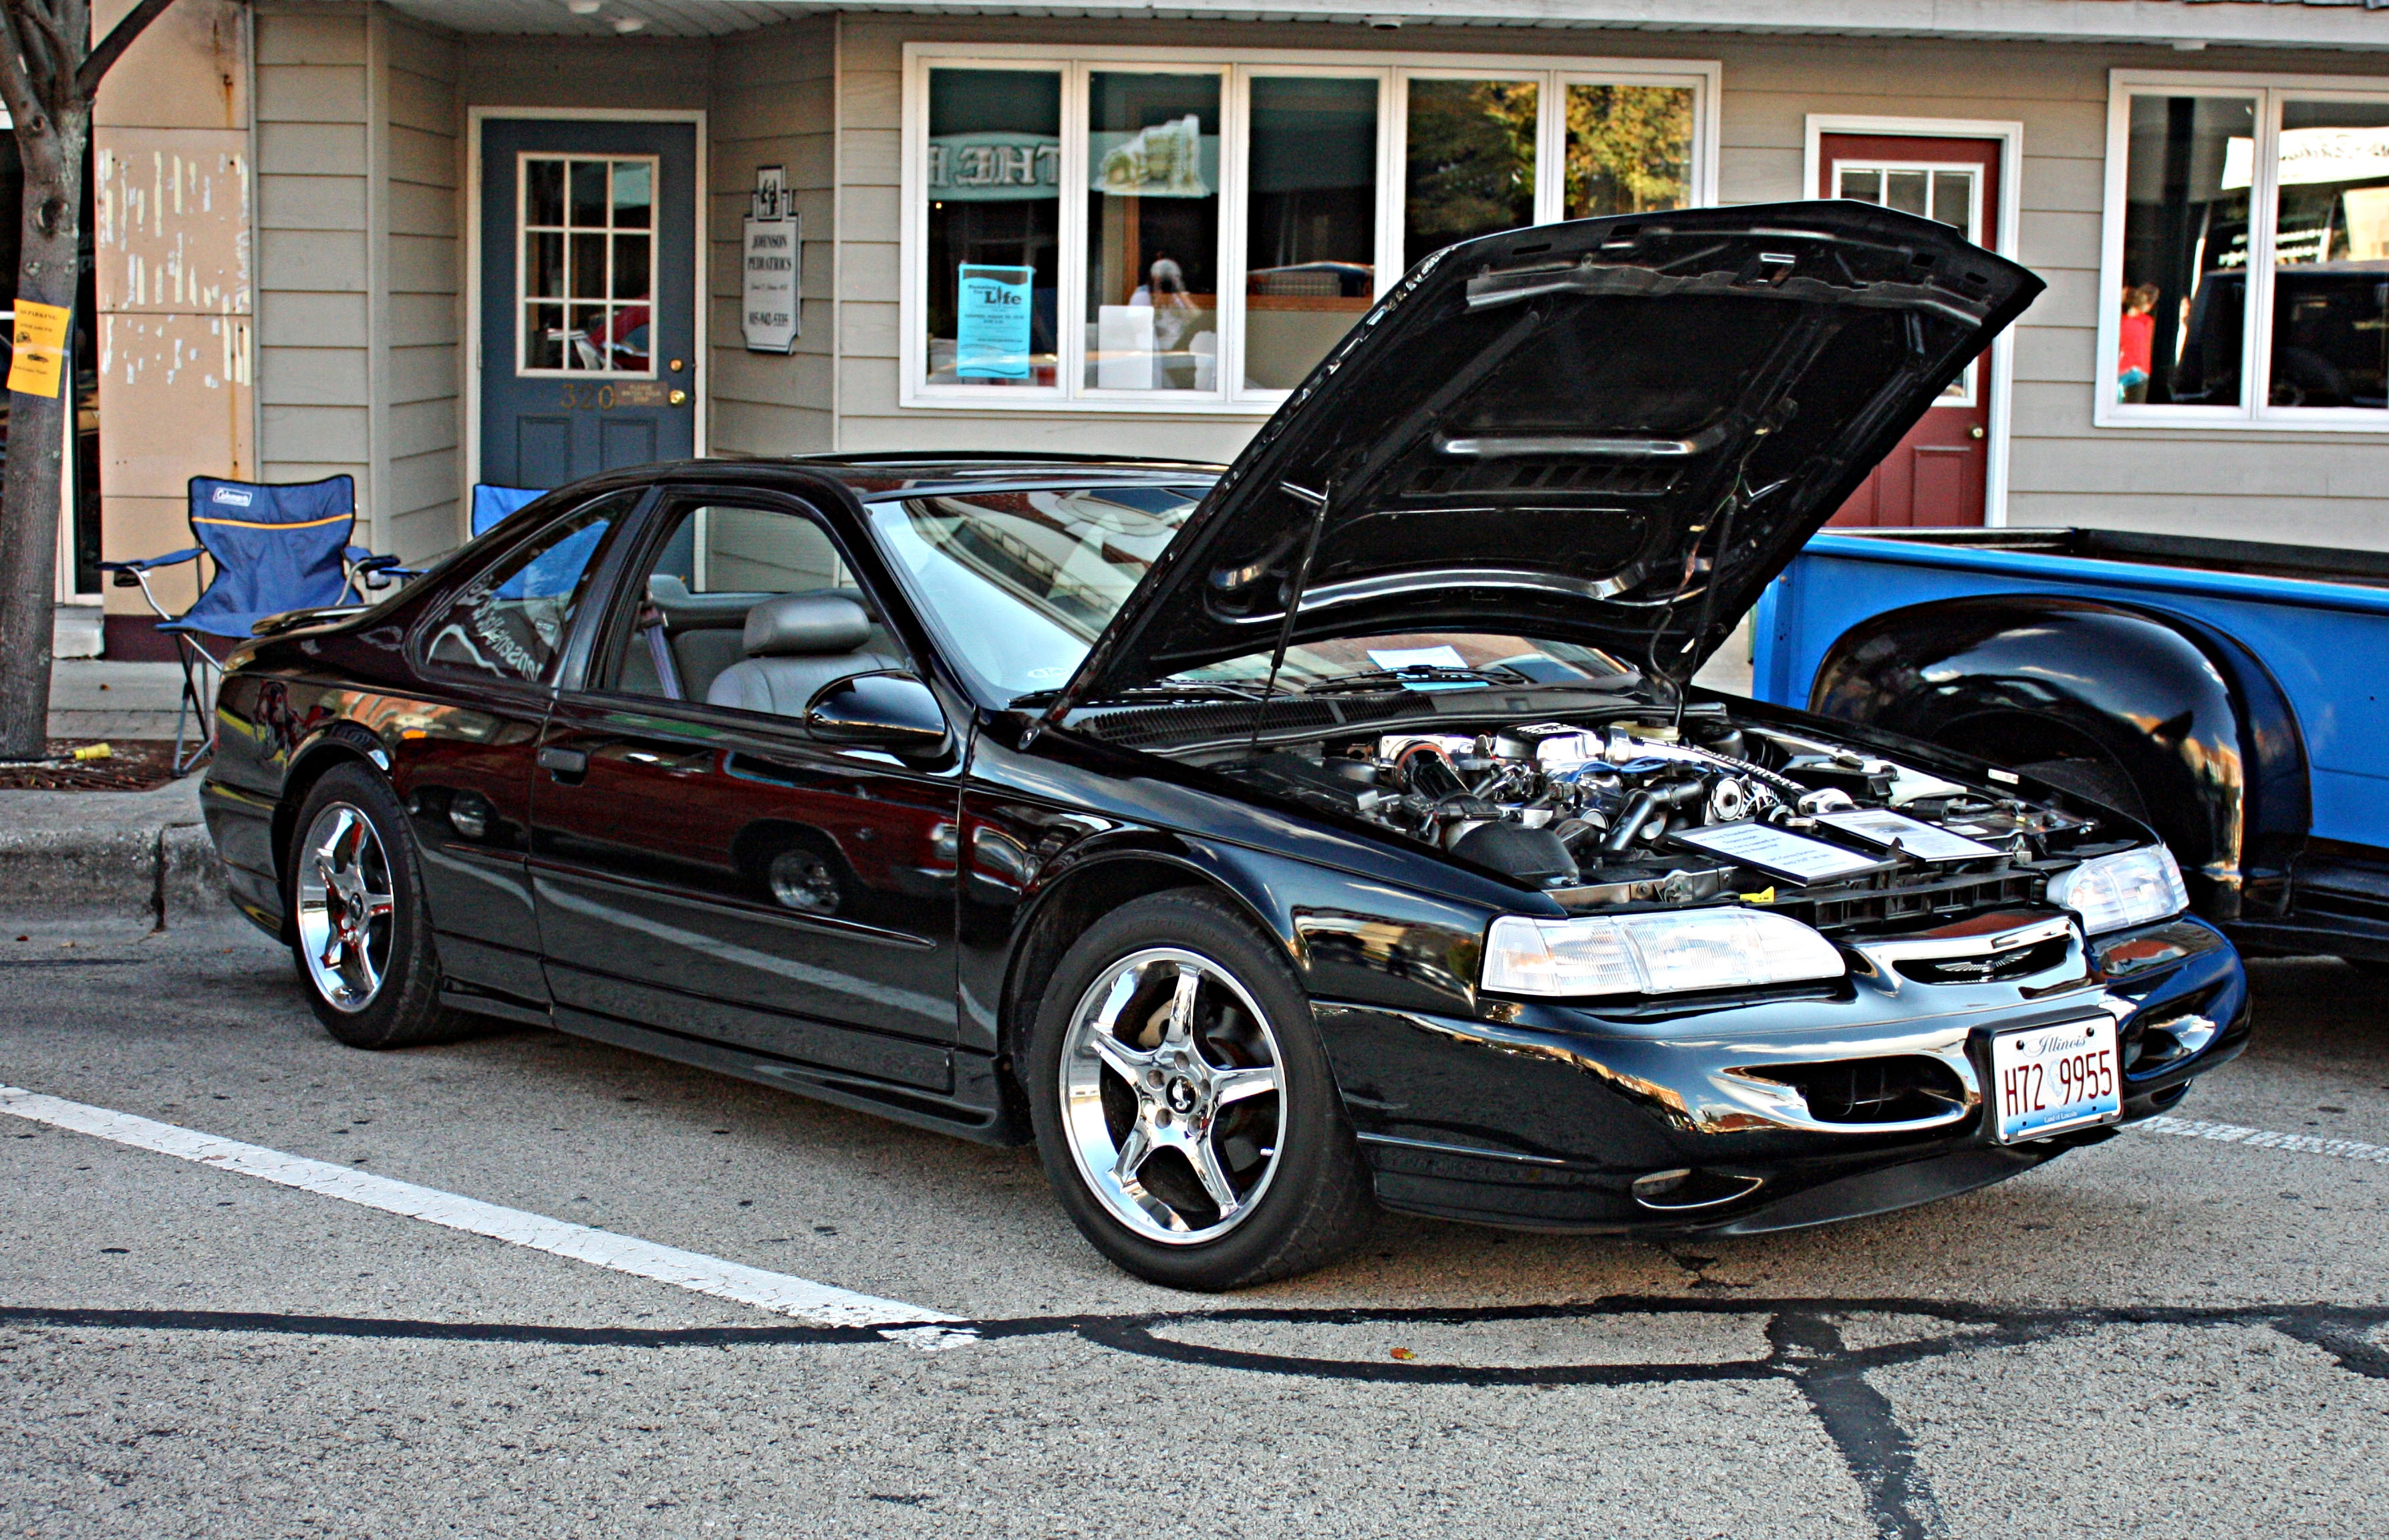 cdurb's 1995 Ford Thunderbird